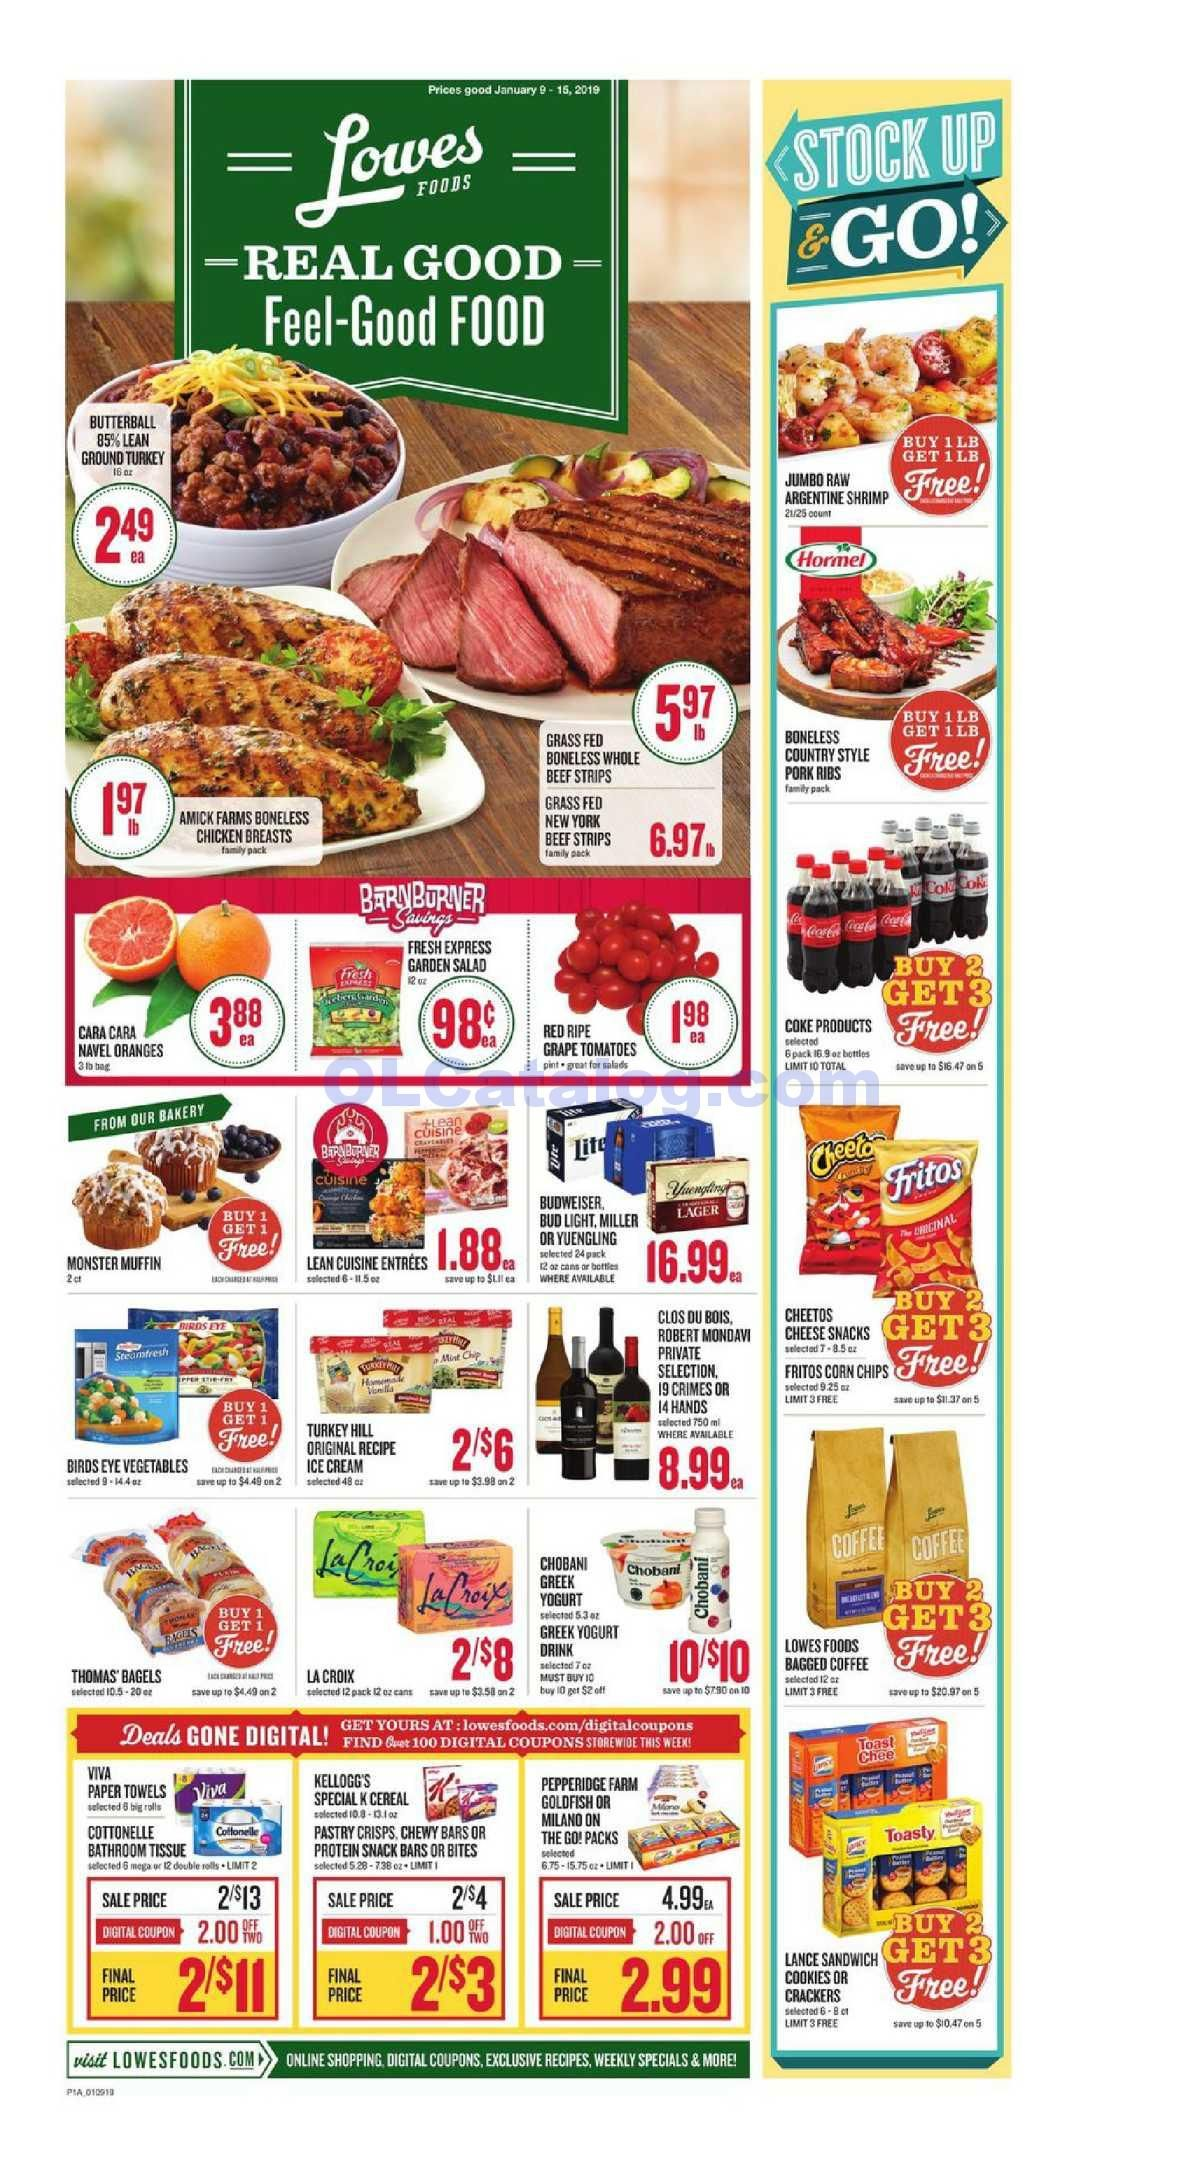 Lowes foods Weekly Ad January 9 15, 2019. View the